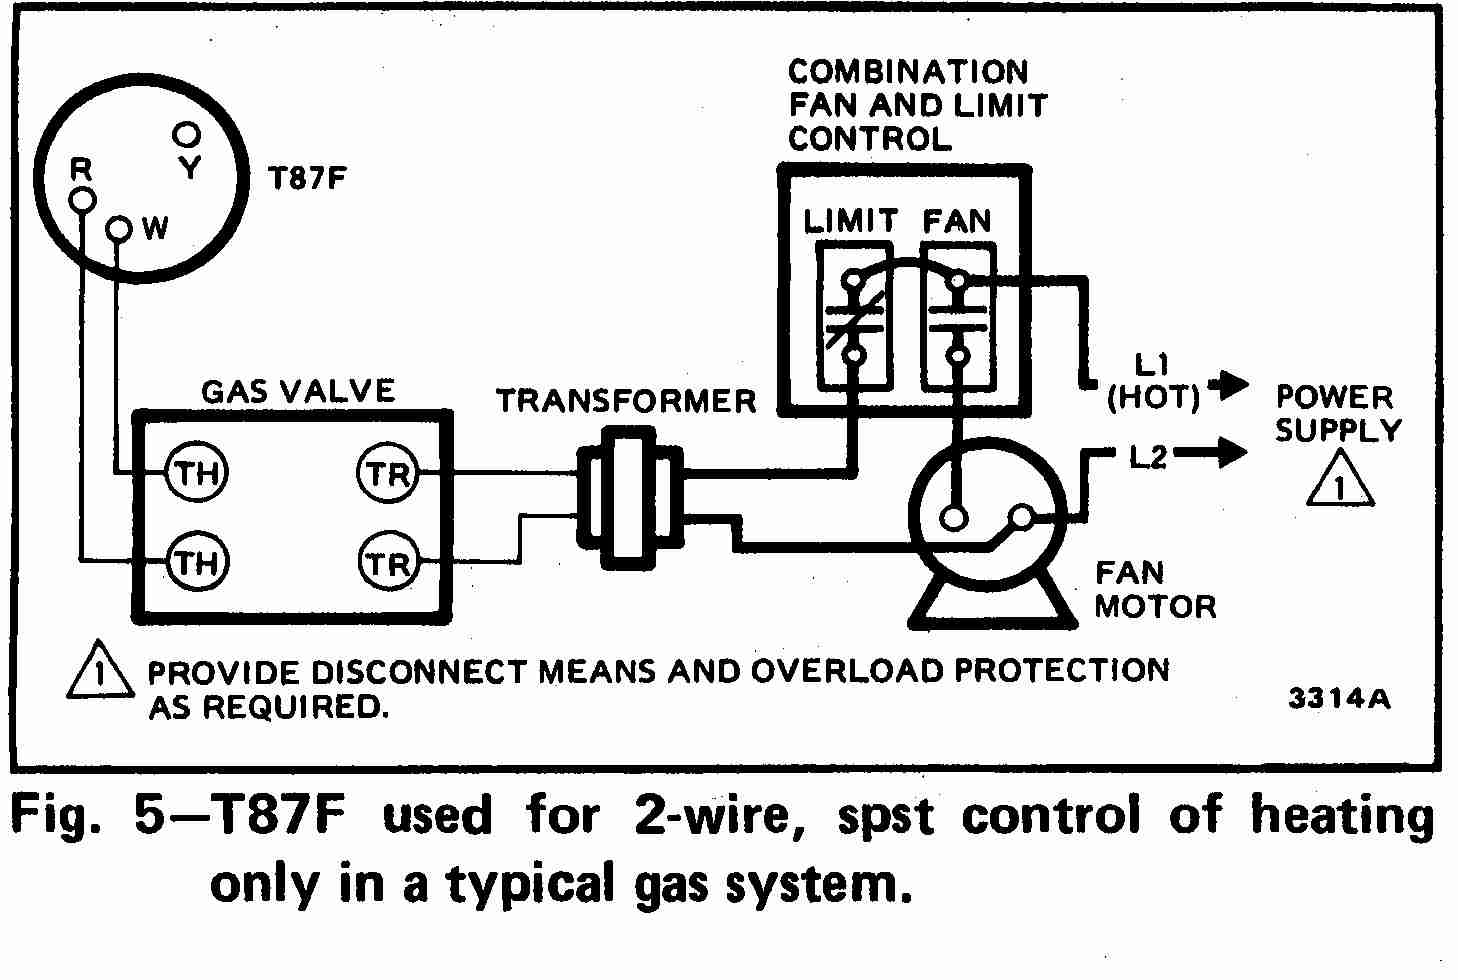 TT_T87F_0002_2Wg_DJF zone valve wiring installation & instructions guide to heating honeywell 4 wire zone valve wiring diagram at soozxer.org